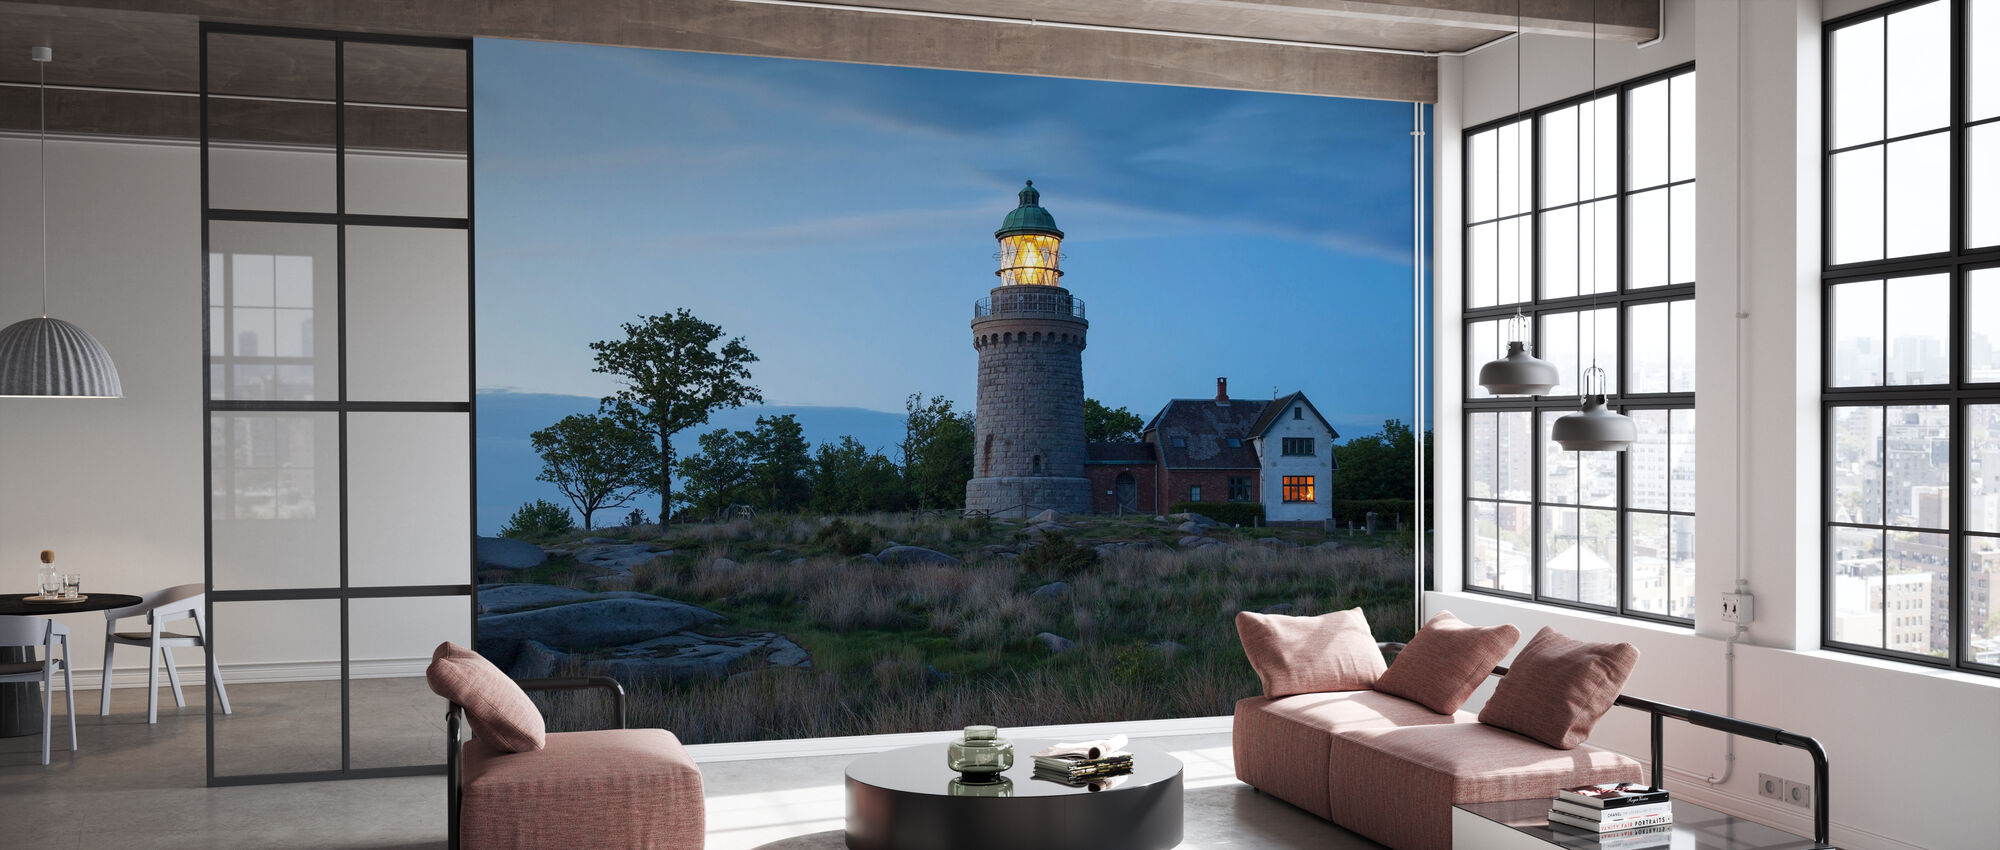 Lighthouse in Bornholm, Denmark - Wallpaper - Office